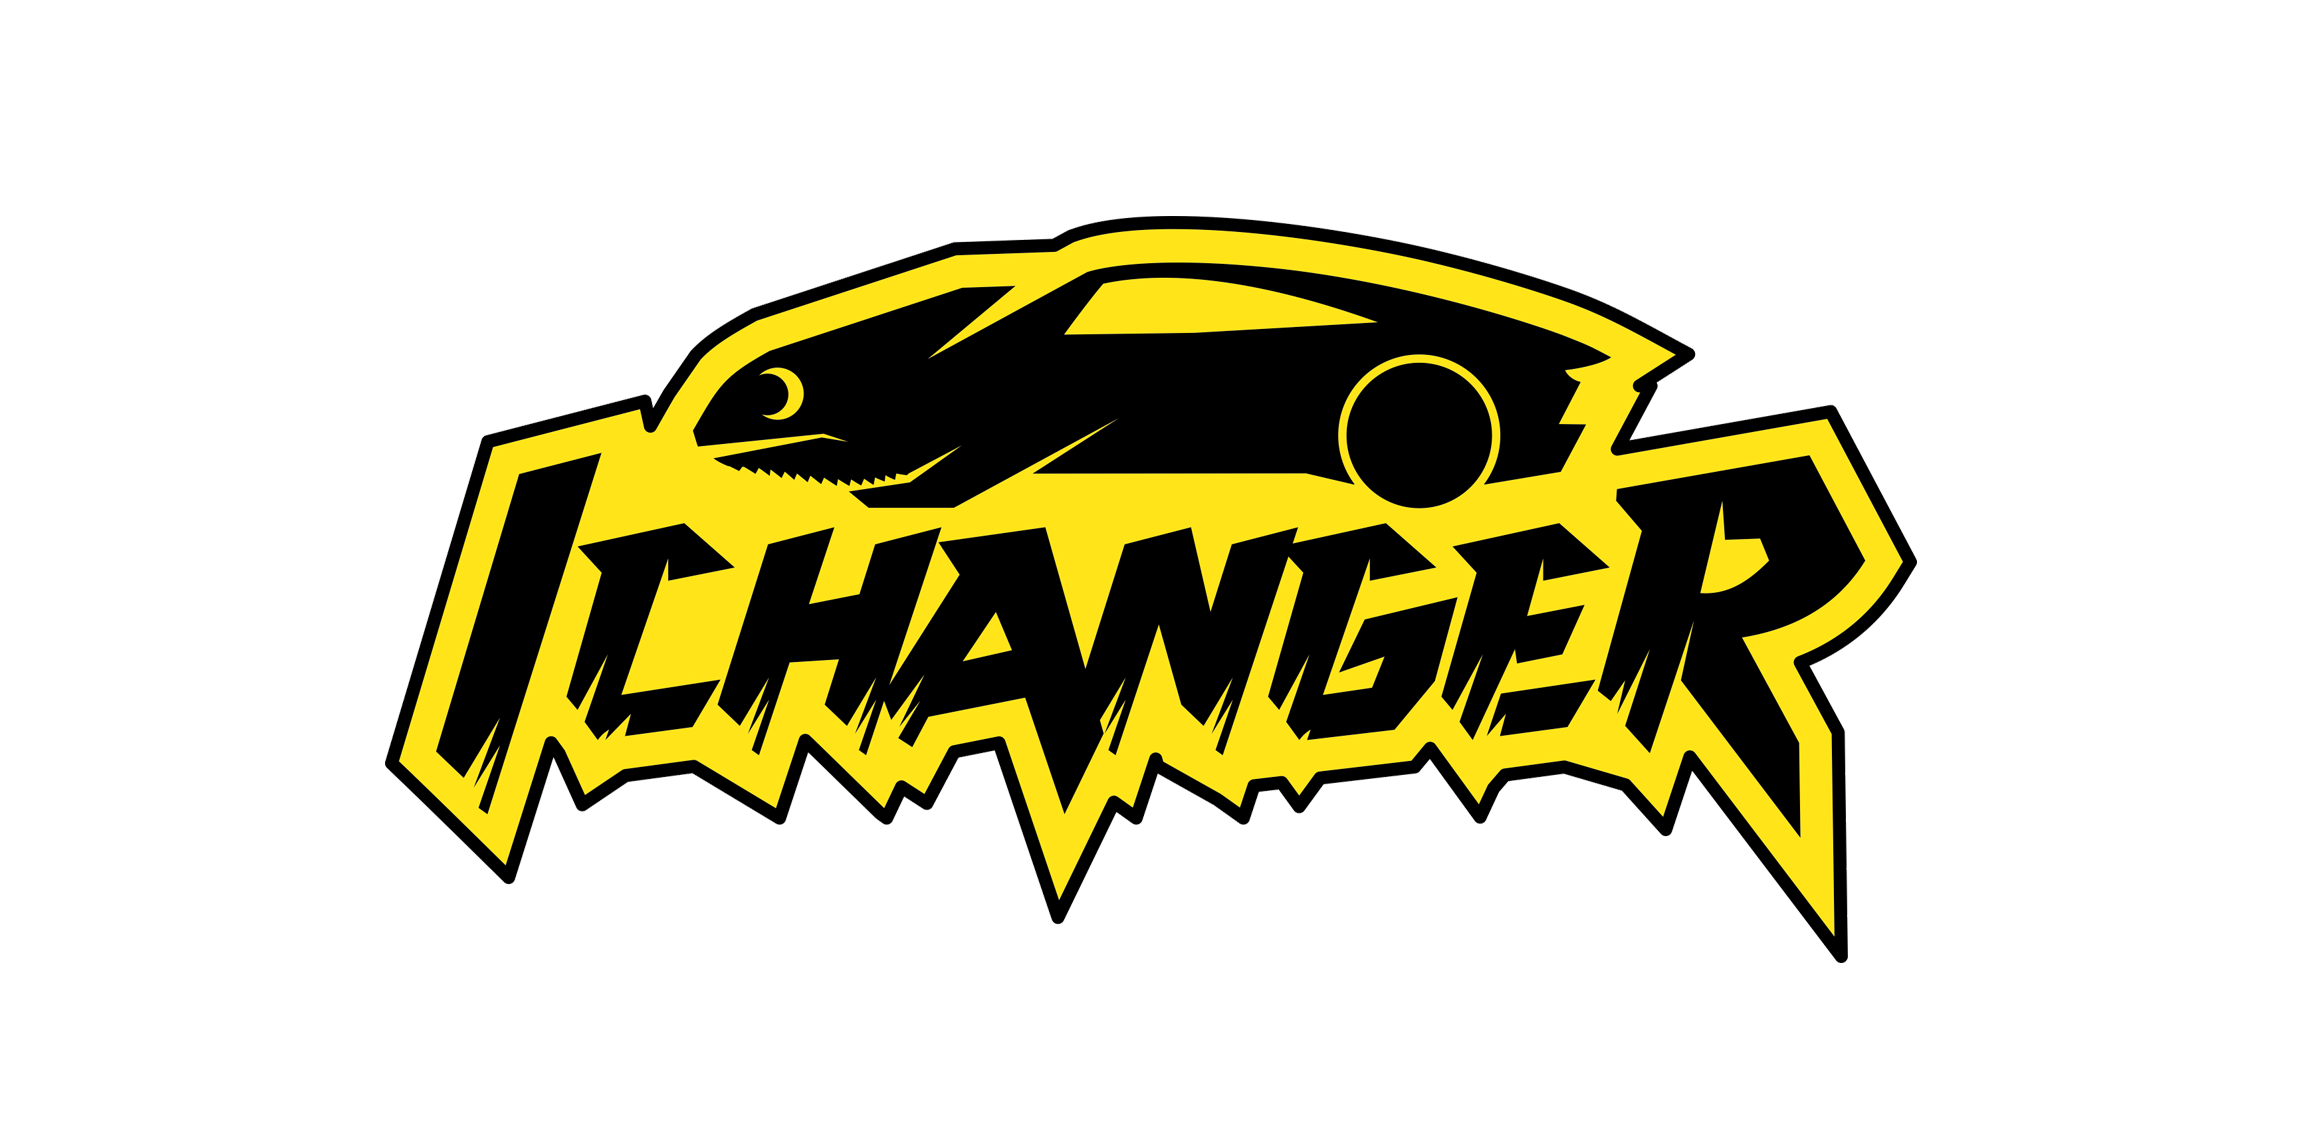 Ichanger ▼ Car Vinyl Wrap Film Manufacture and Supplier